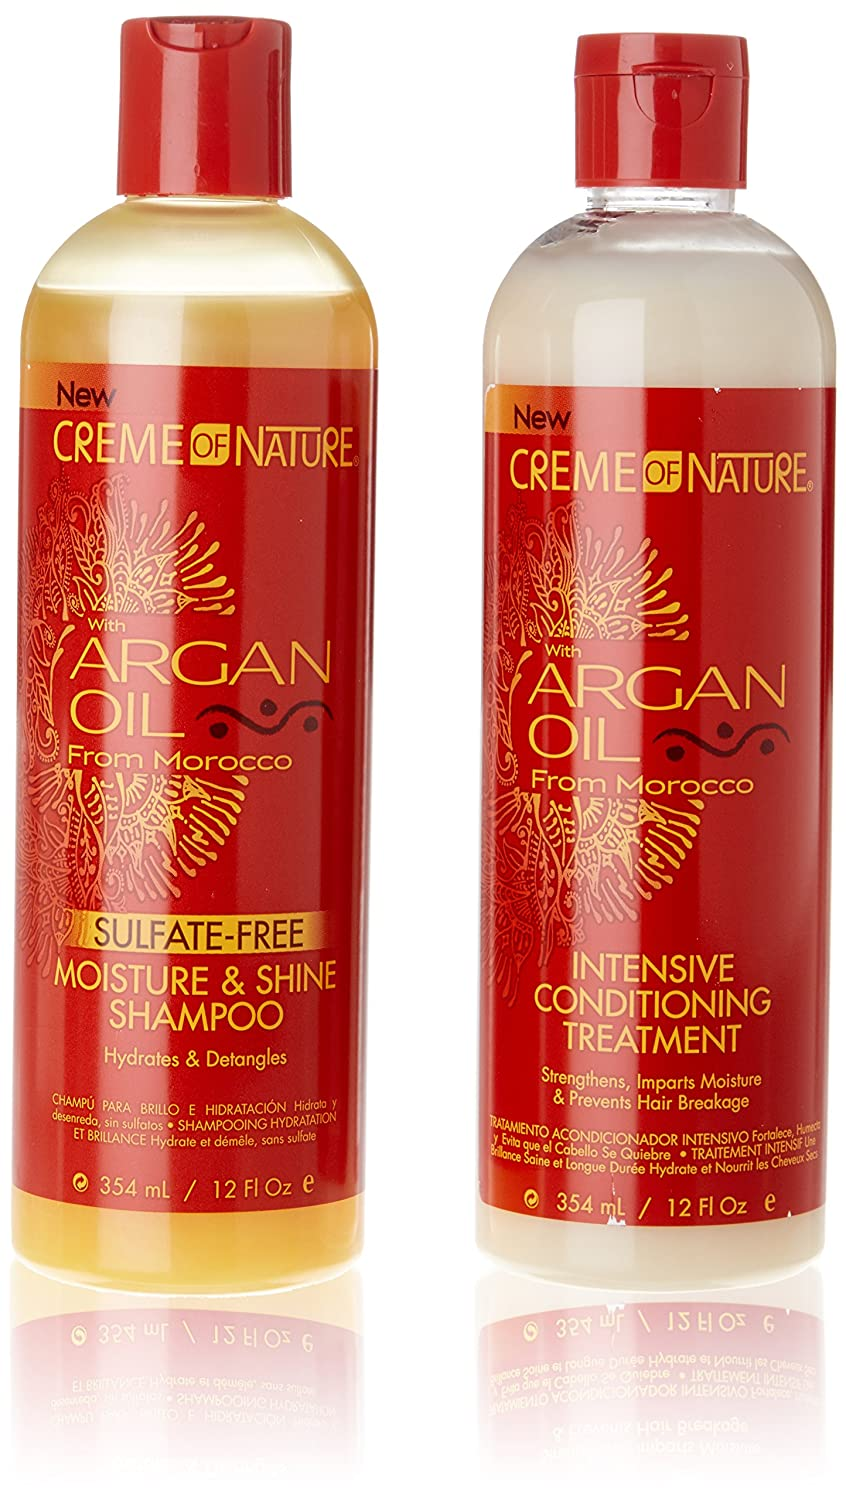 ARGAN OIL FROM MOROCCO INTENSIVE CONDITIONING TREATMENT & SULFATE FREE SHAMPOODEAL by Creme of Nature